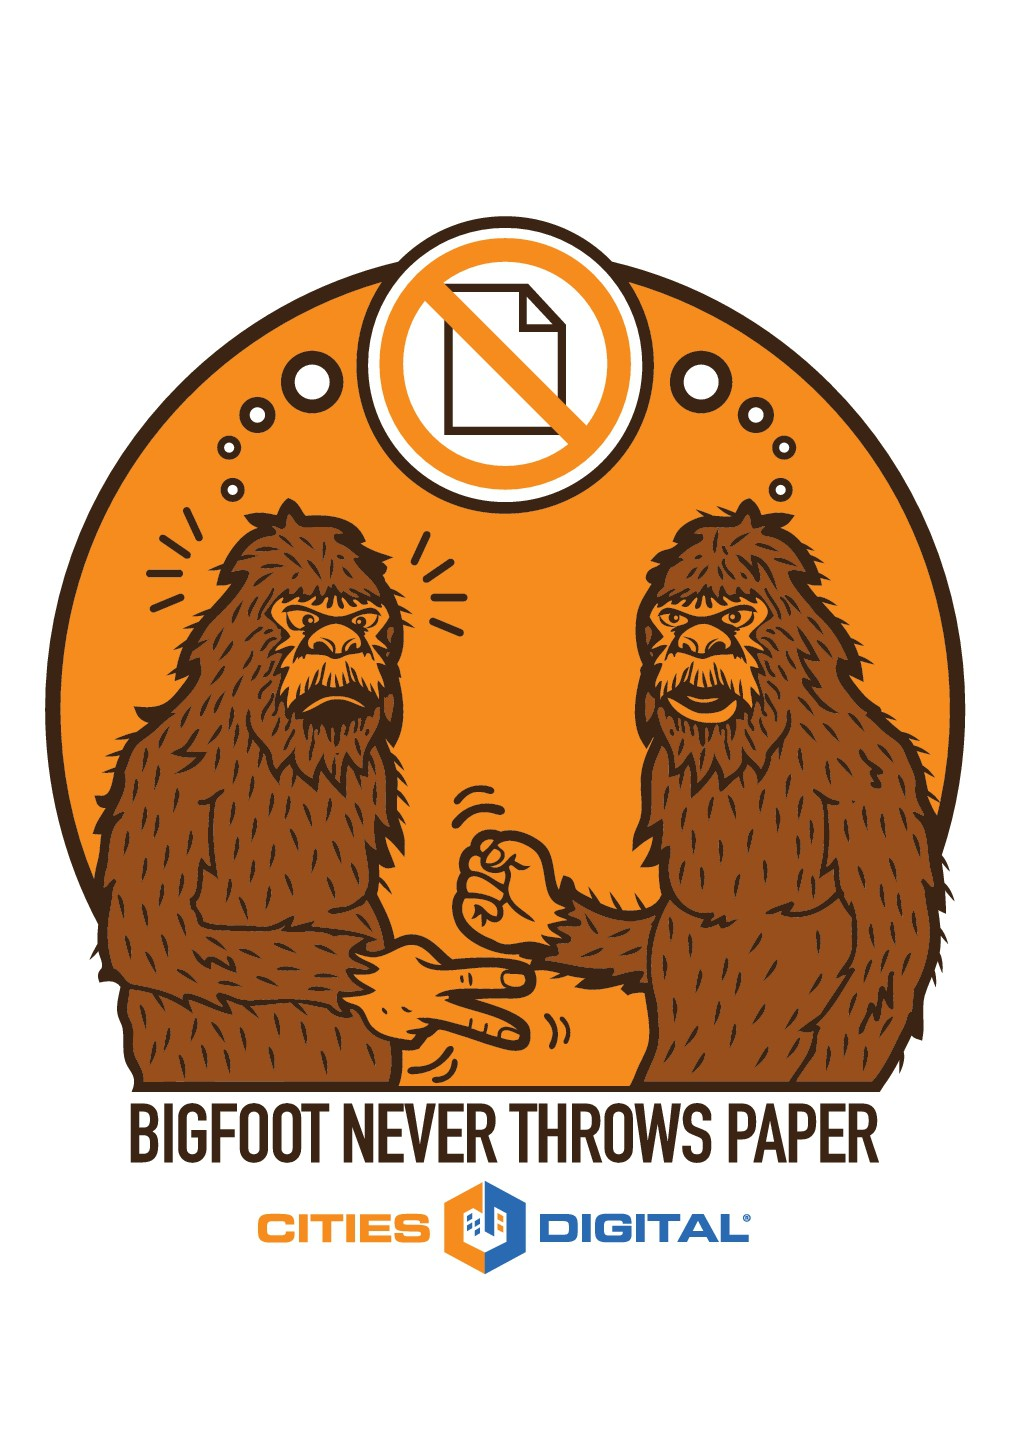 Rock/Paper/Scissors for Sasquatches